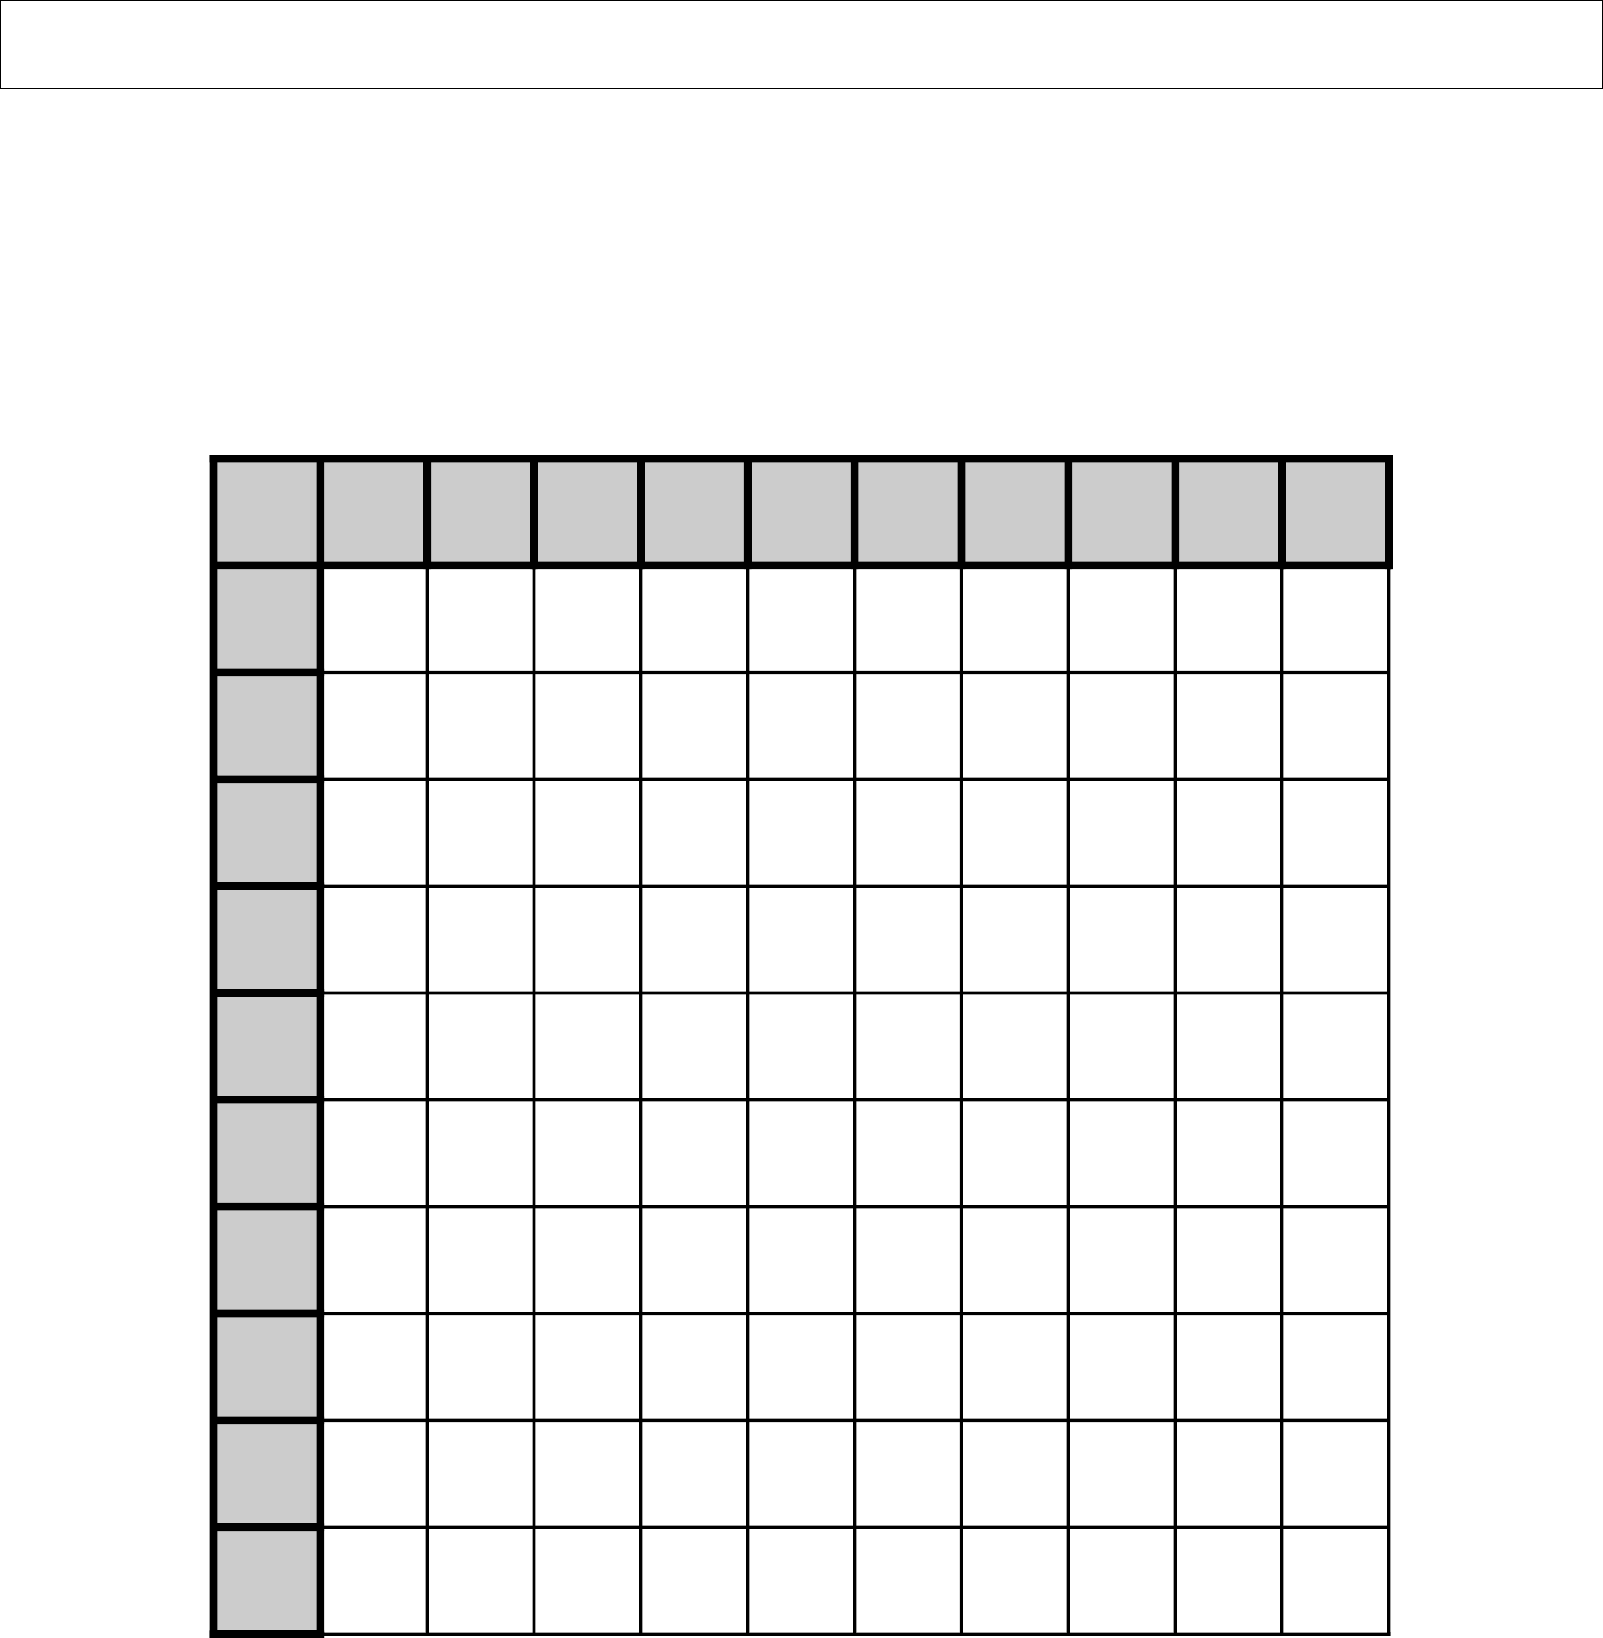 worksheet. Multiplication Table Worksheet Blank. Grass